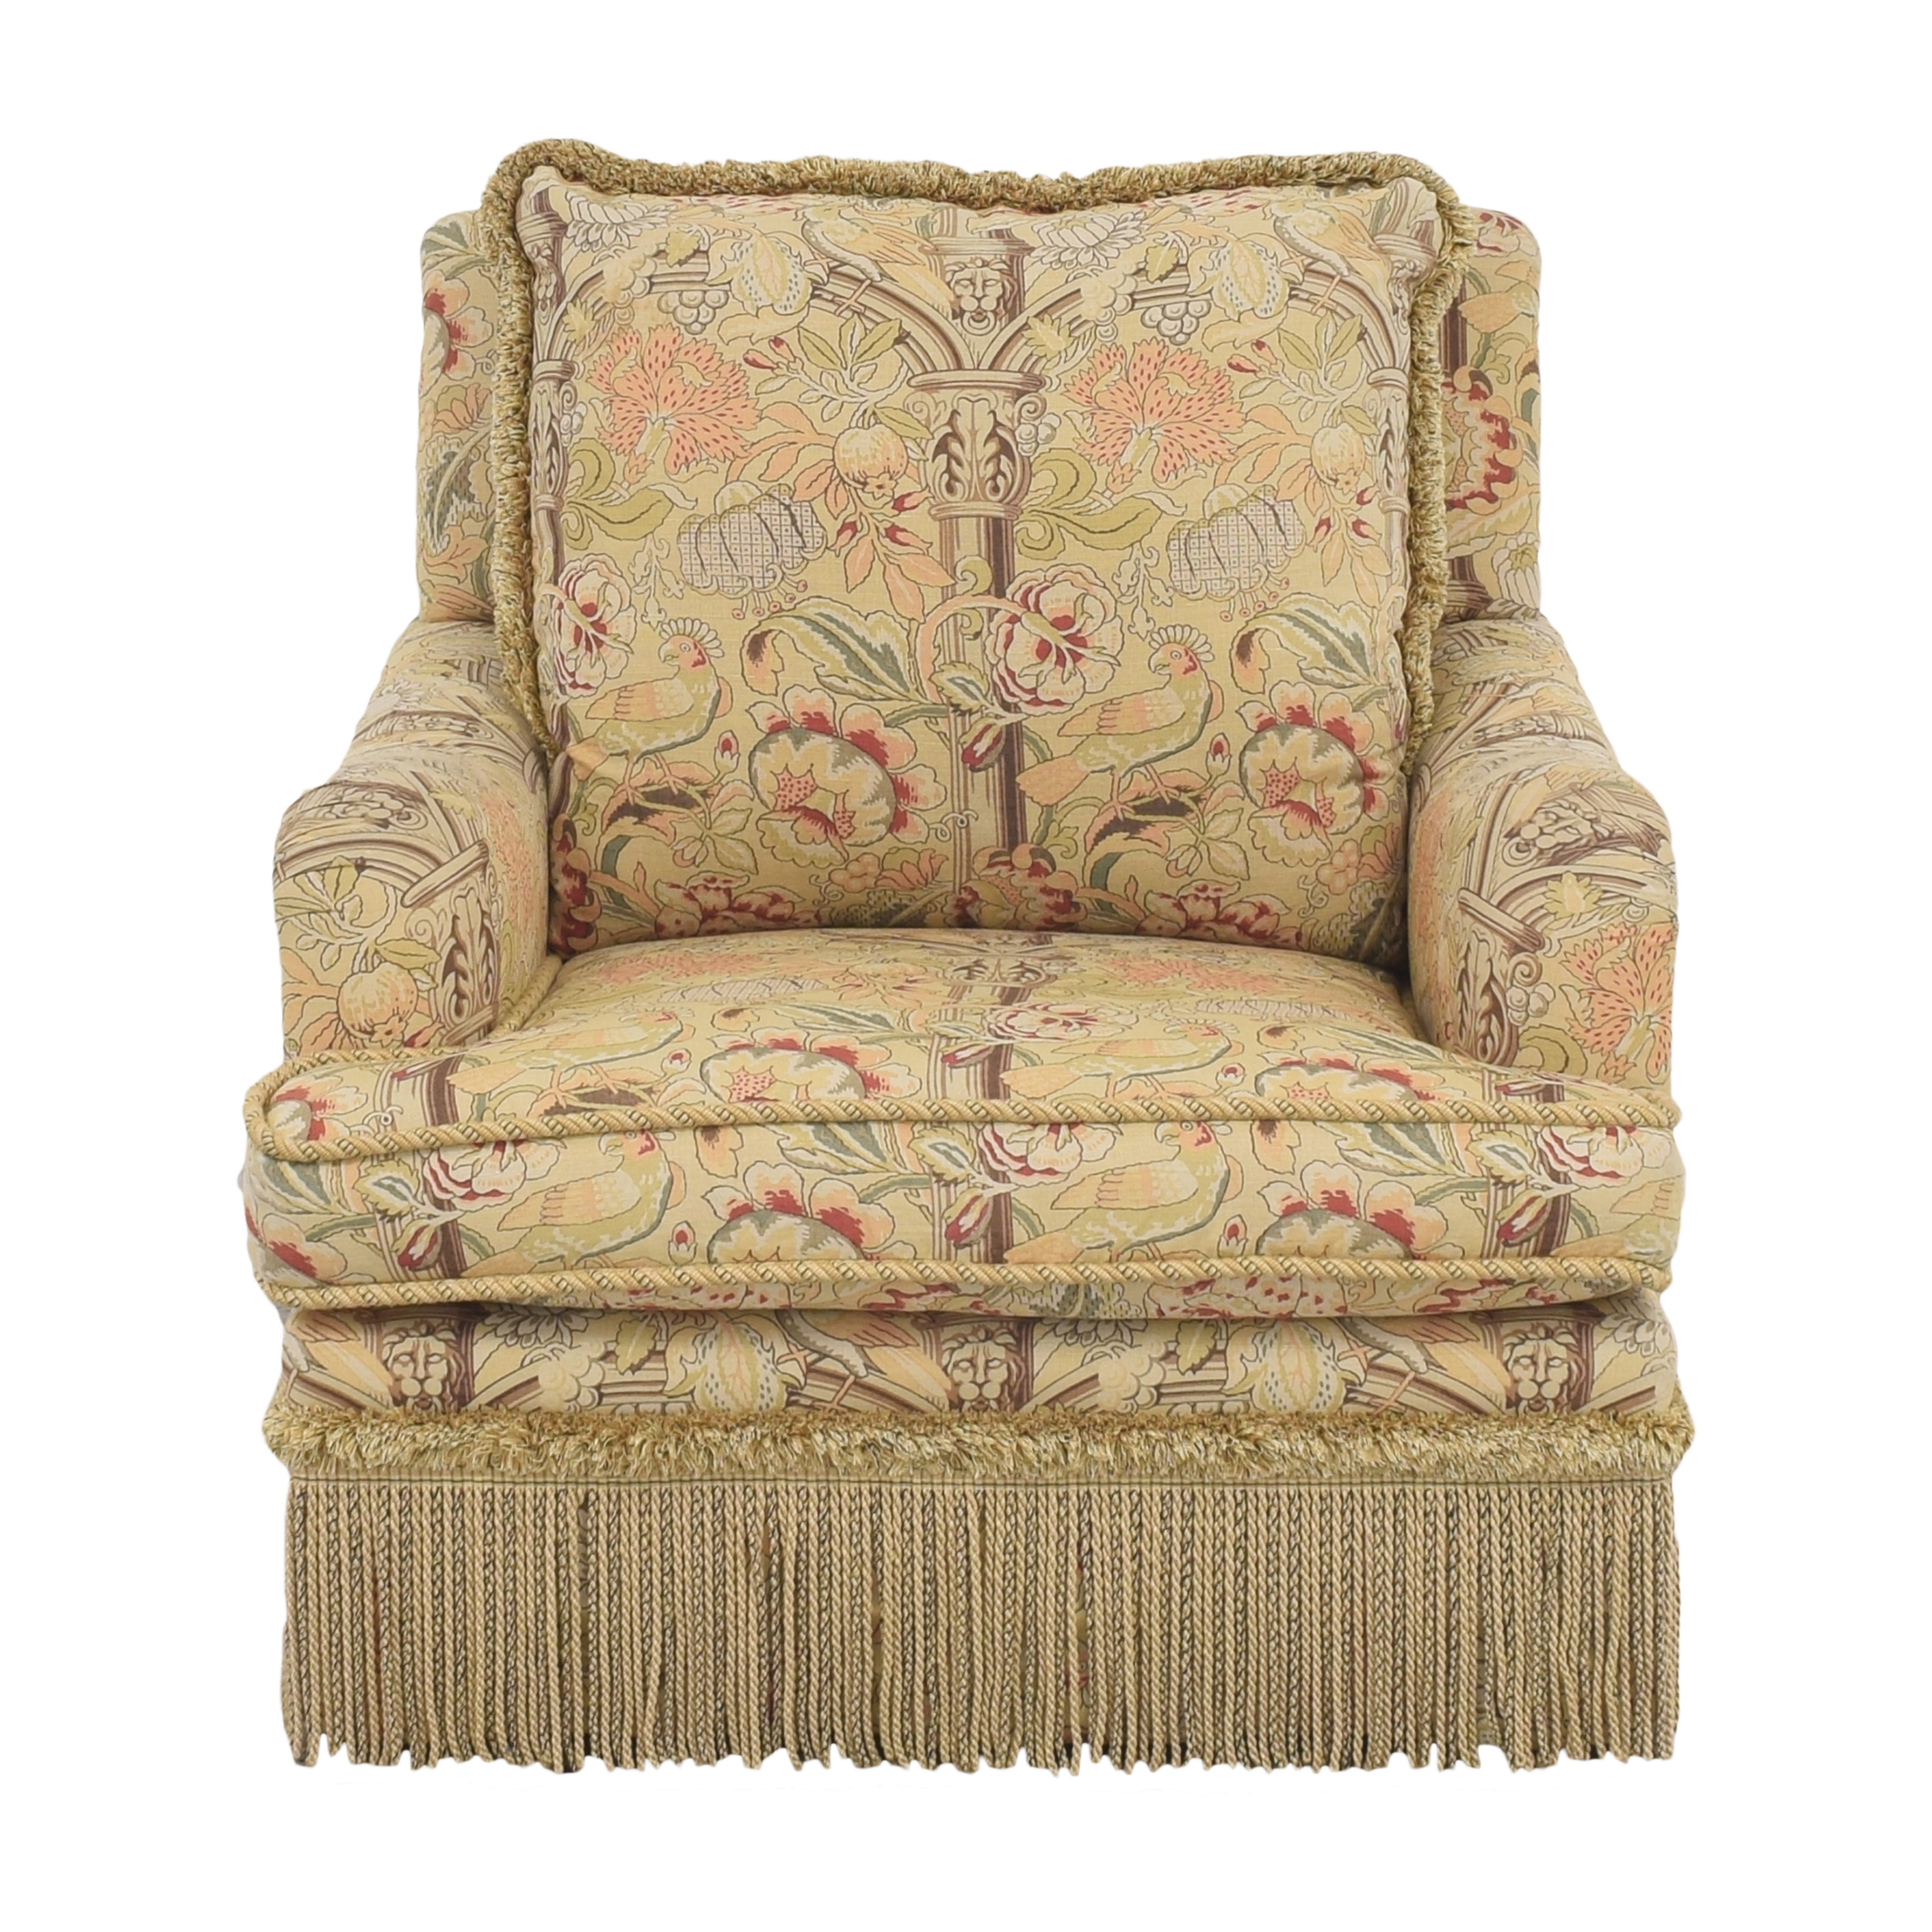 buy  Custom Fringe Skirt Accent Chair online